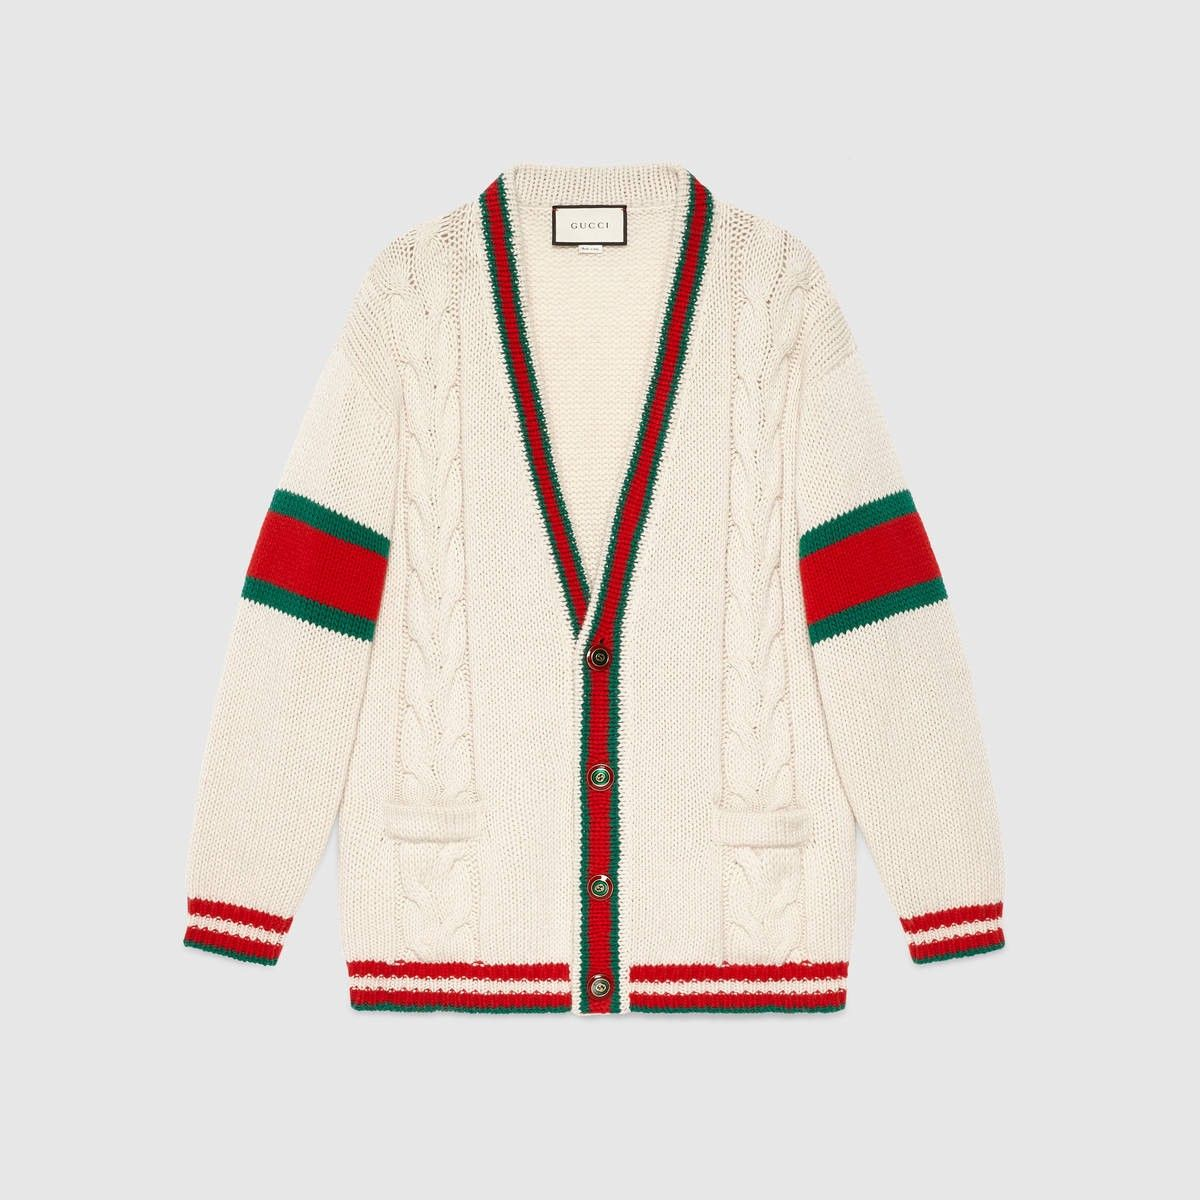 38cd3e1c39 GUCCI Web cable knit wool cardigan - off-white cable knit.  gucci  cloth